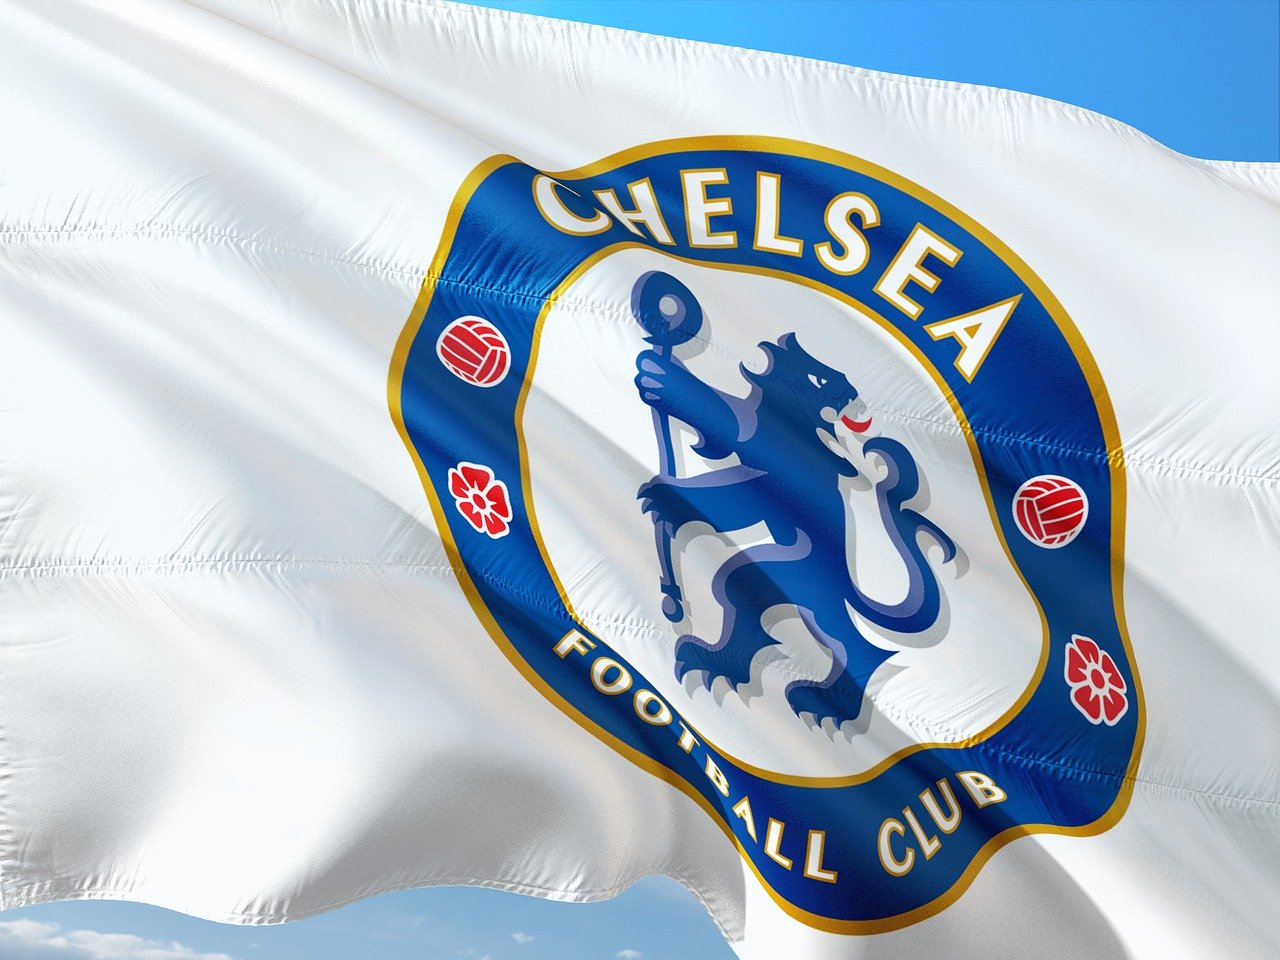 Chelsea vs Man Utd: Preview, betting odds and prediction